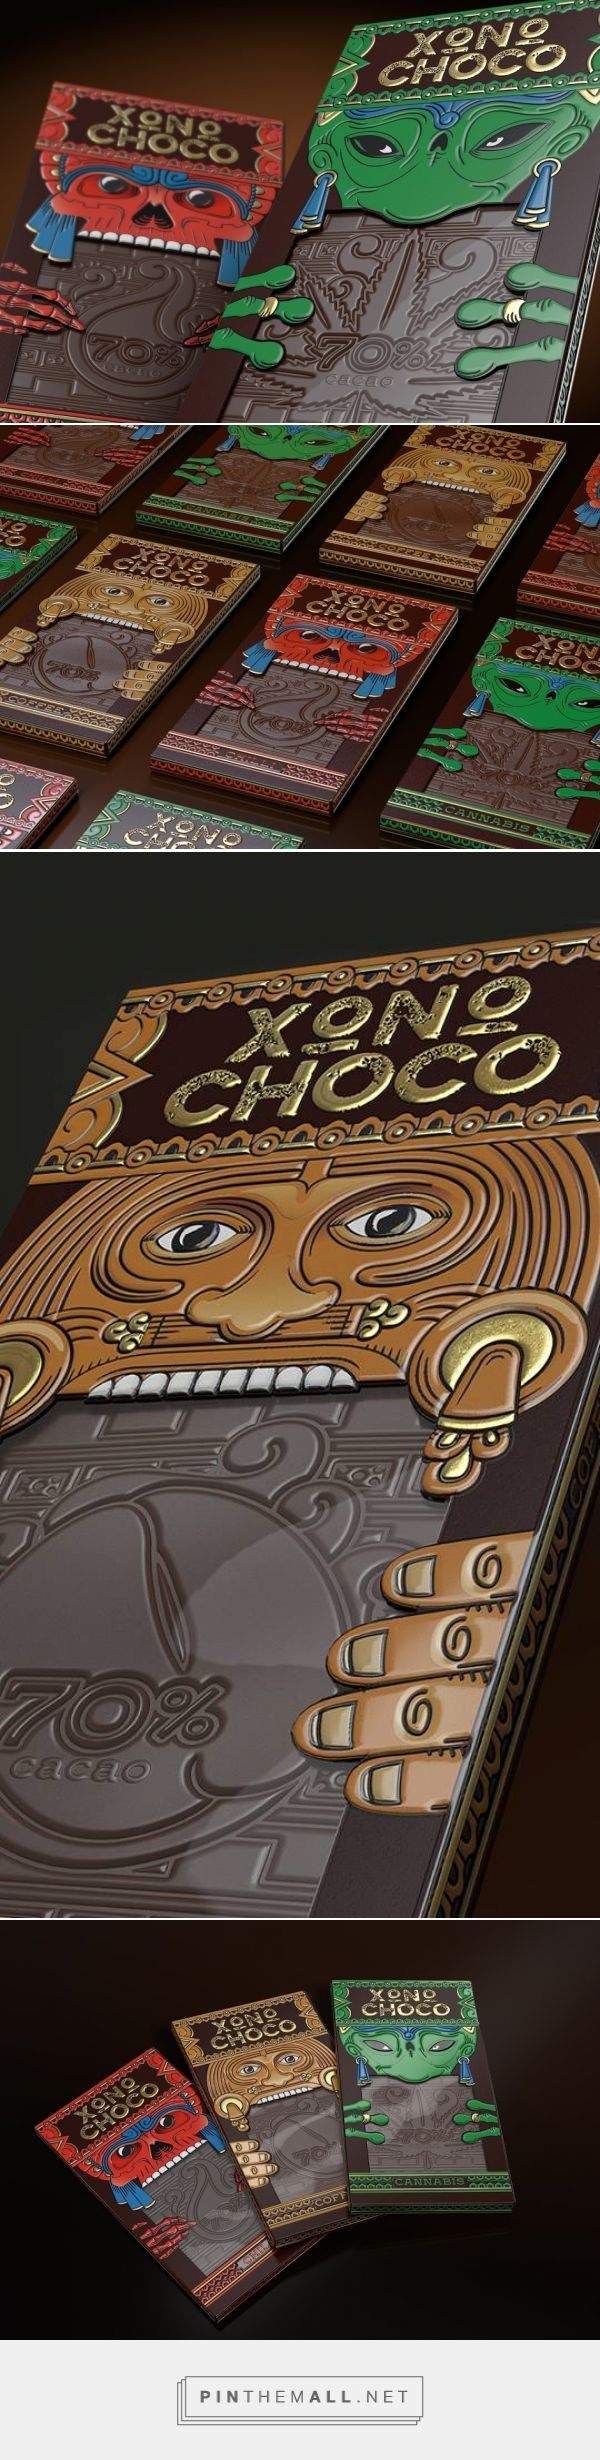 Xoconochco Chocolate concept packaging designed by Brand Brothers Russia (Russia) - http://www.packagingoftheworld.com/2016/03/xoconochco-chocolate-concept.html